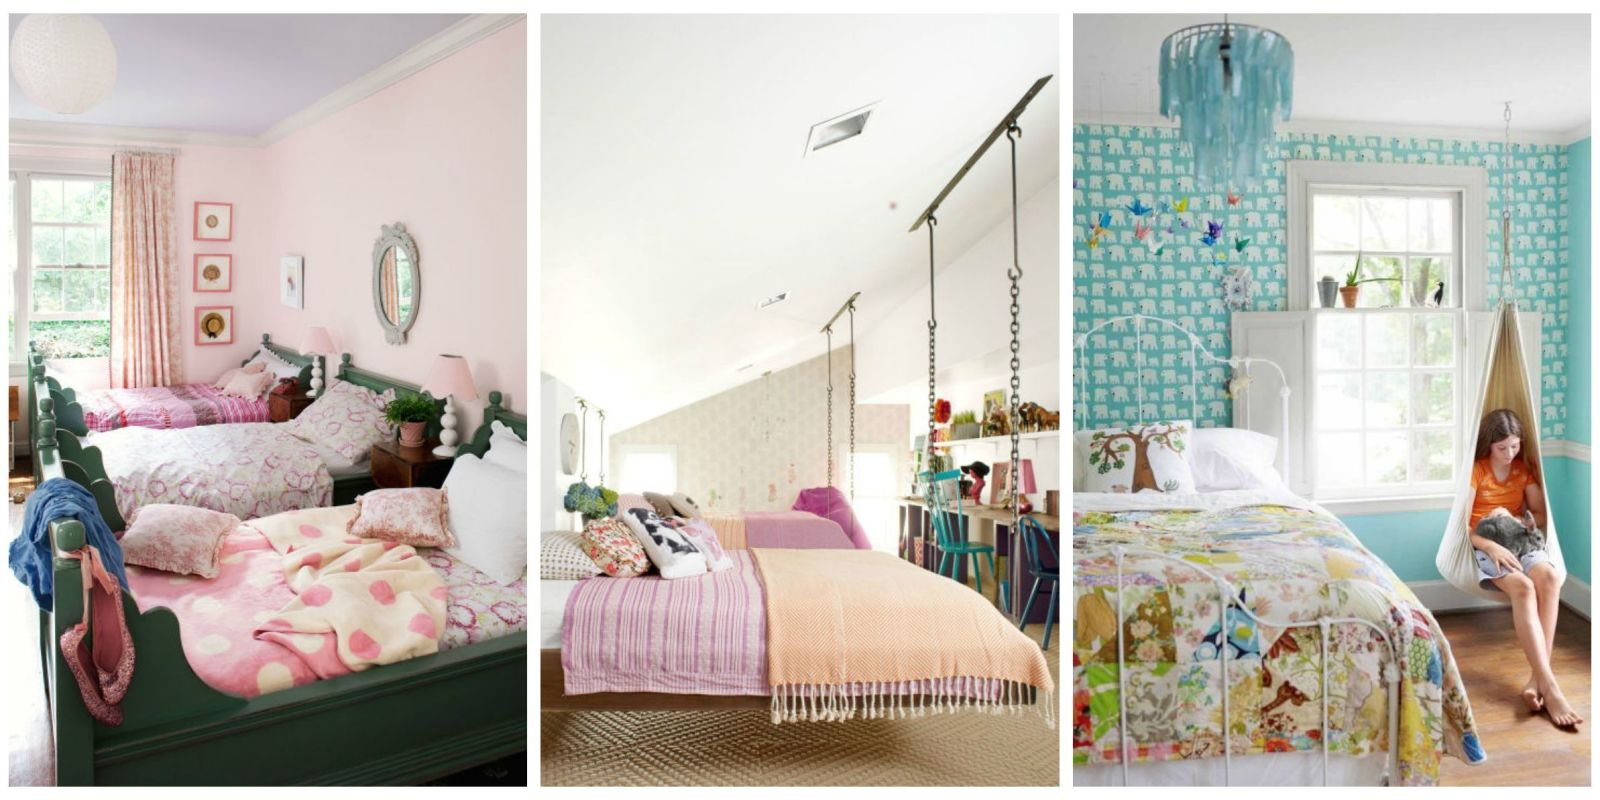 12 fun girl 39 s bedroom decor ideas cute room decorating for Cute bedroom decorating ideas for girls